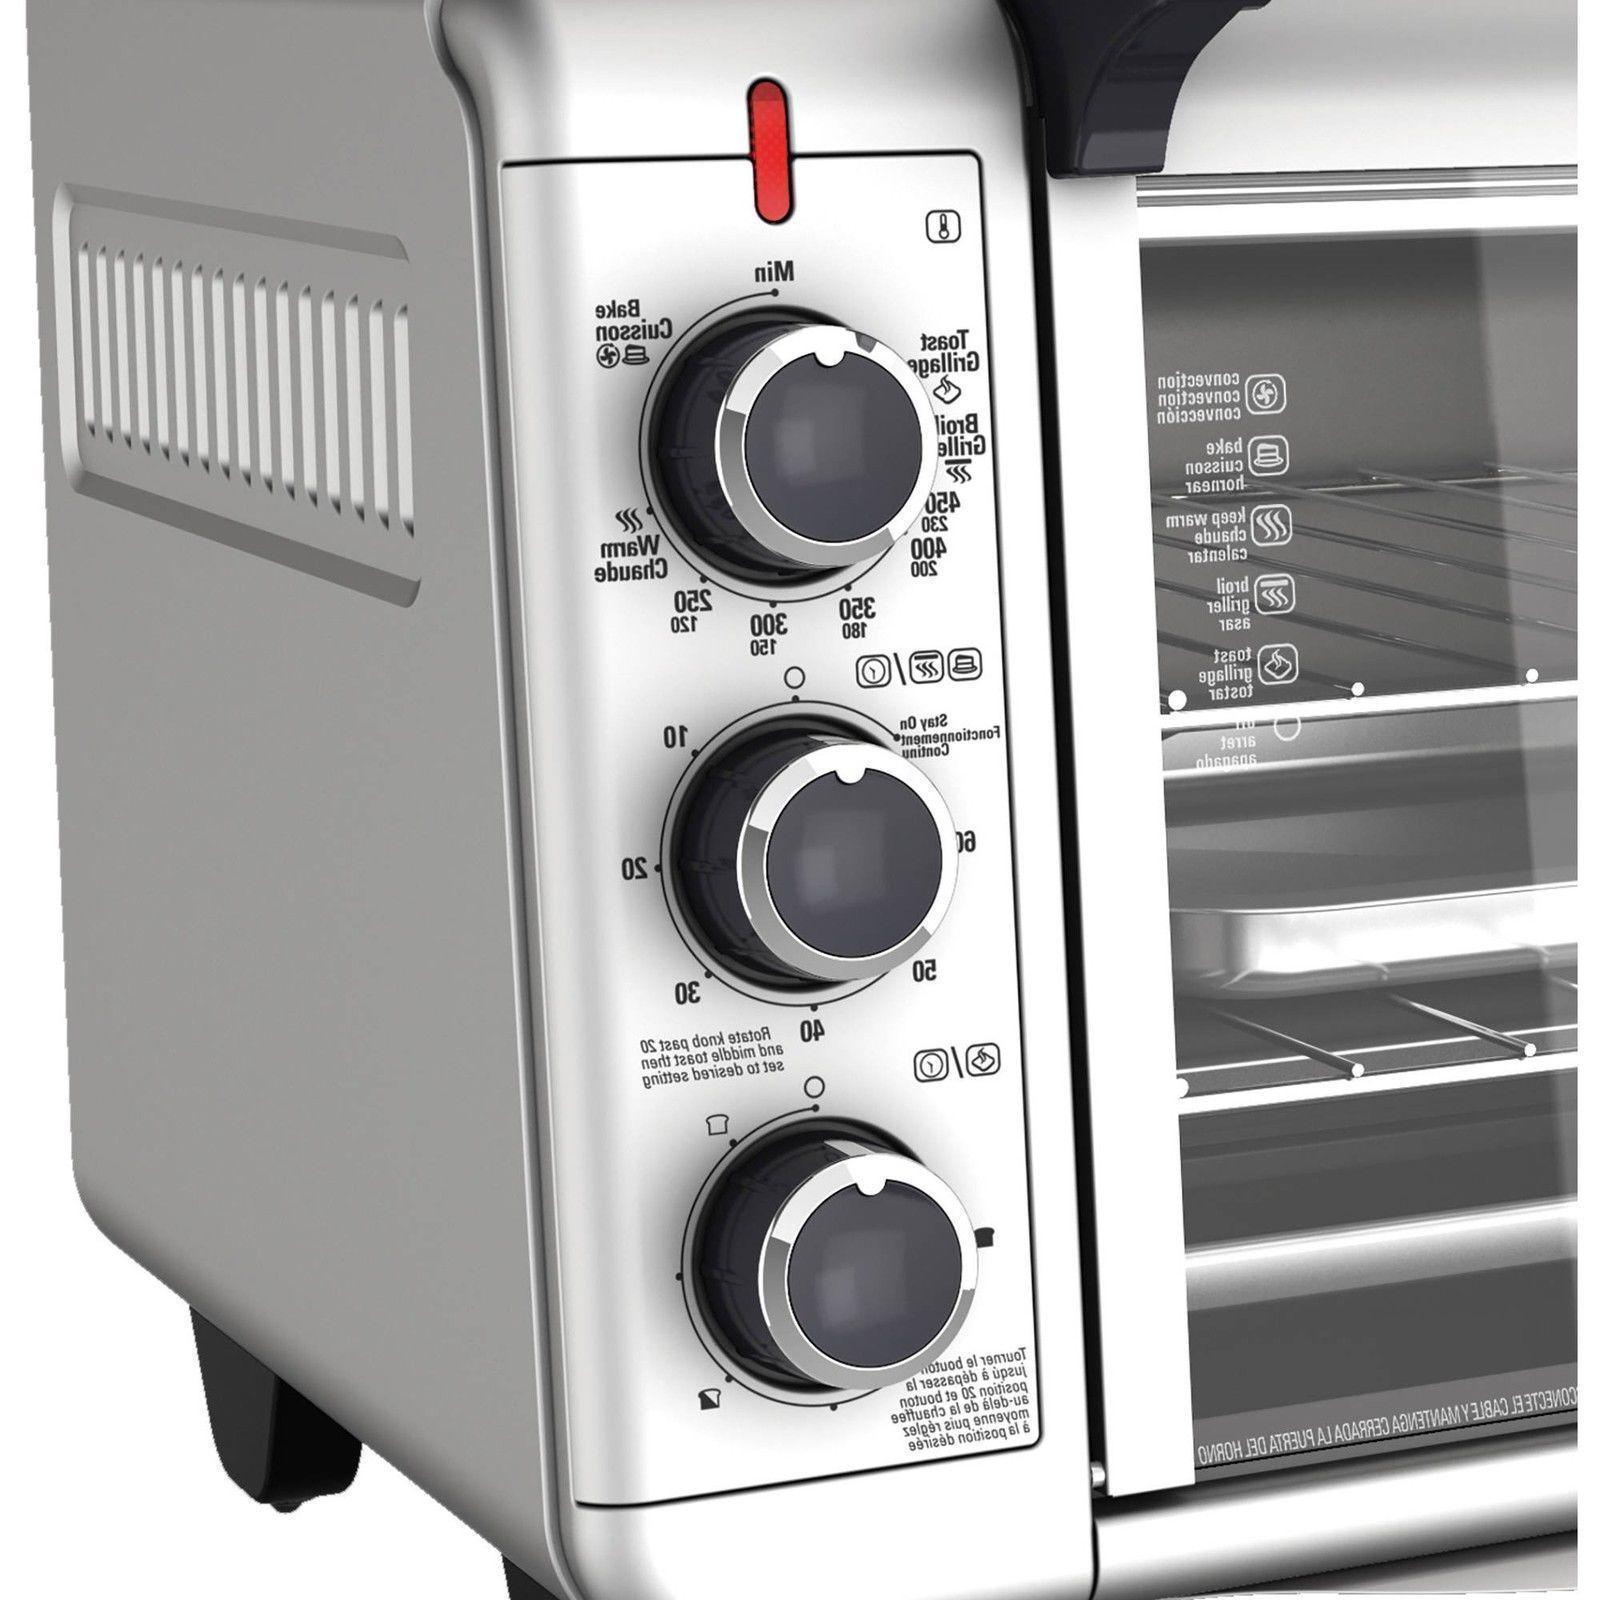 6-Slice Oven TO3000G BRAND